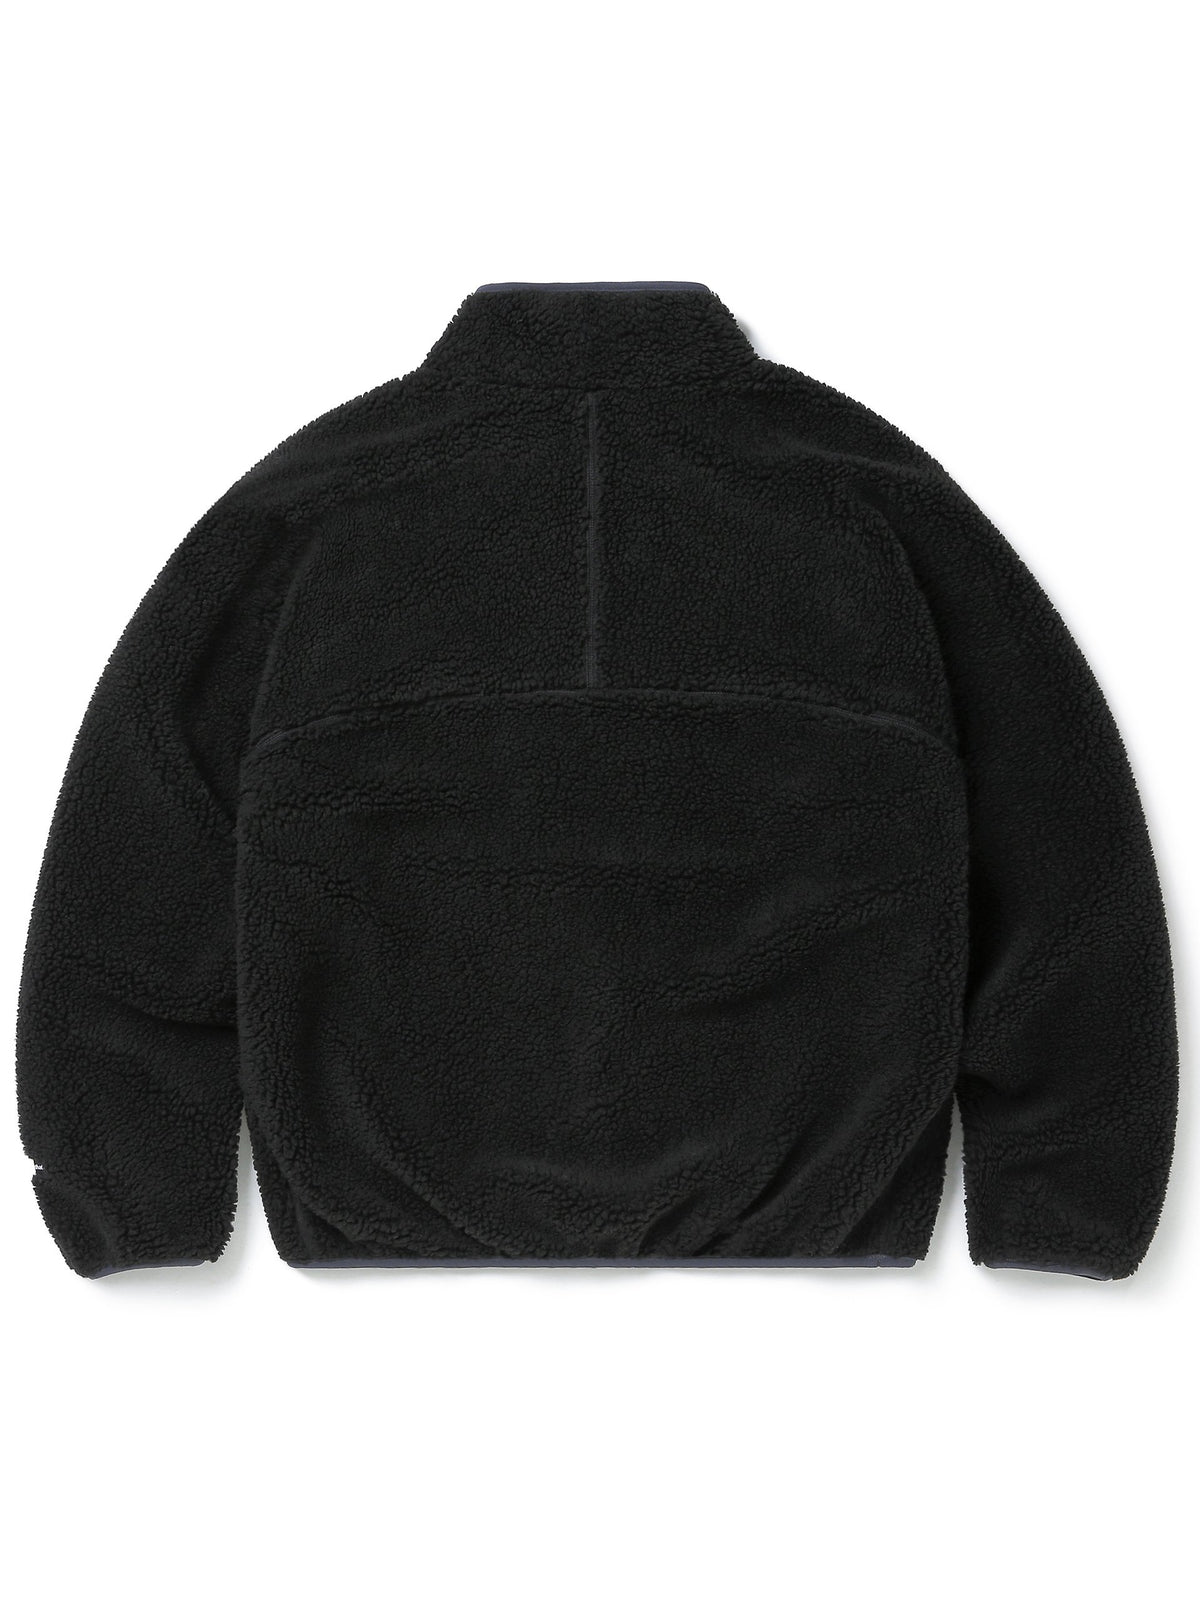 Reversible Boa Fleece Jacket - thisisneverthat